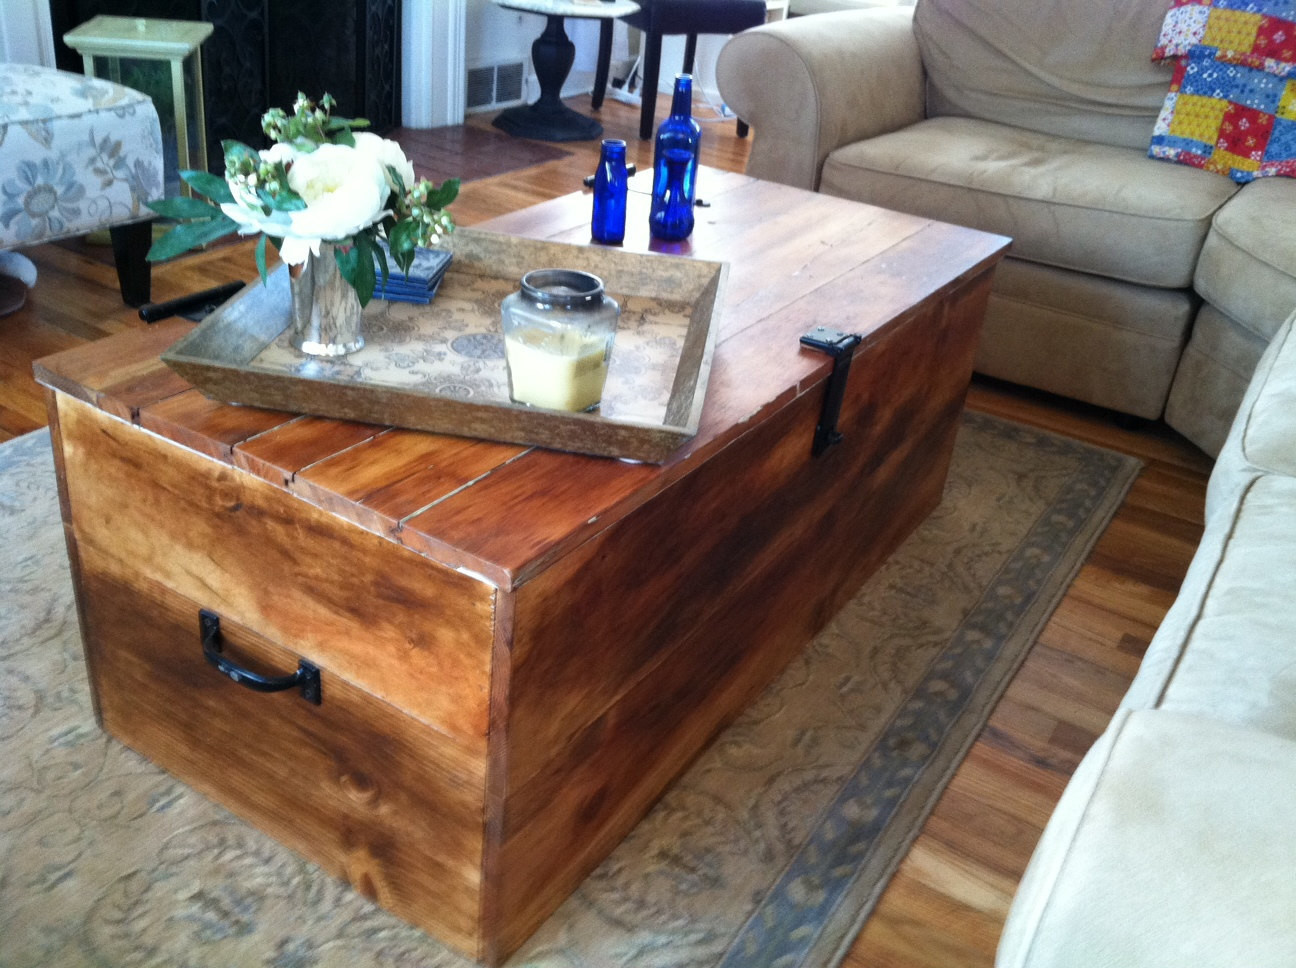 """Best ideas about Wood Crate Coffee Table . Save or Pin Items similar to Wood """"Shipping Crate"""" Coffee Table on Etsy Now."""